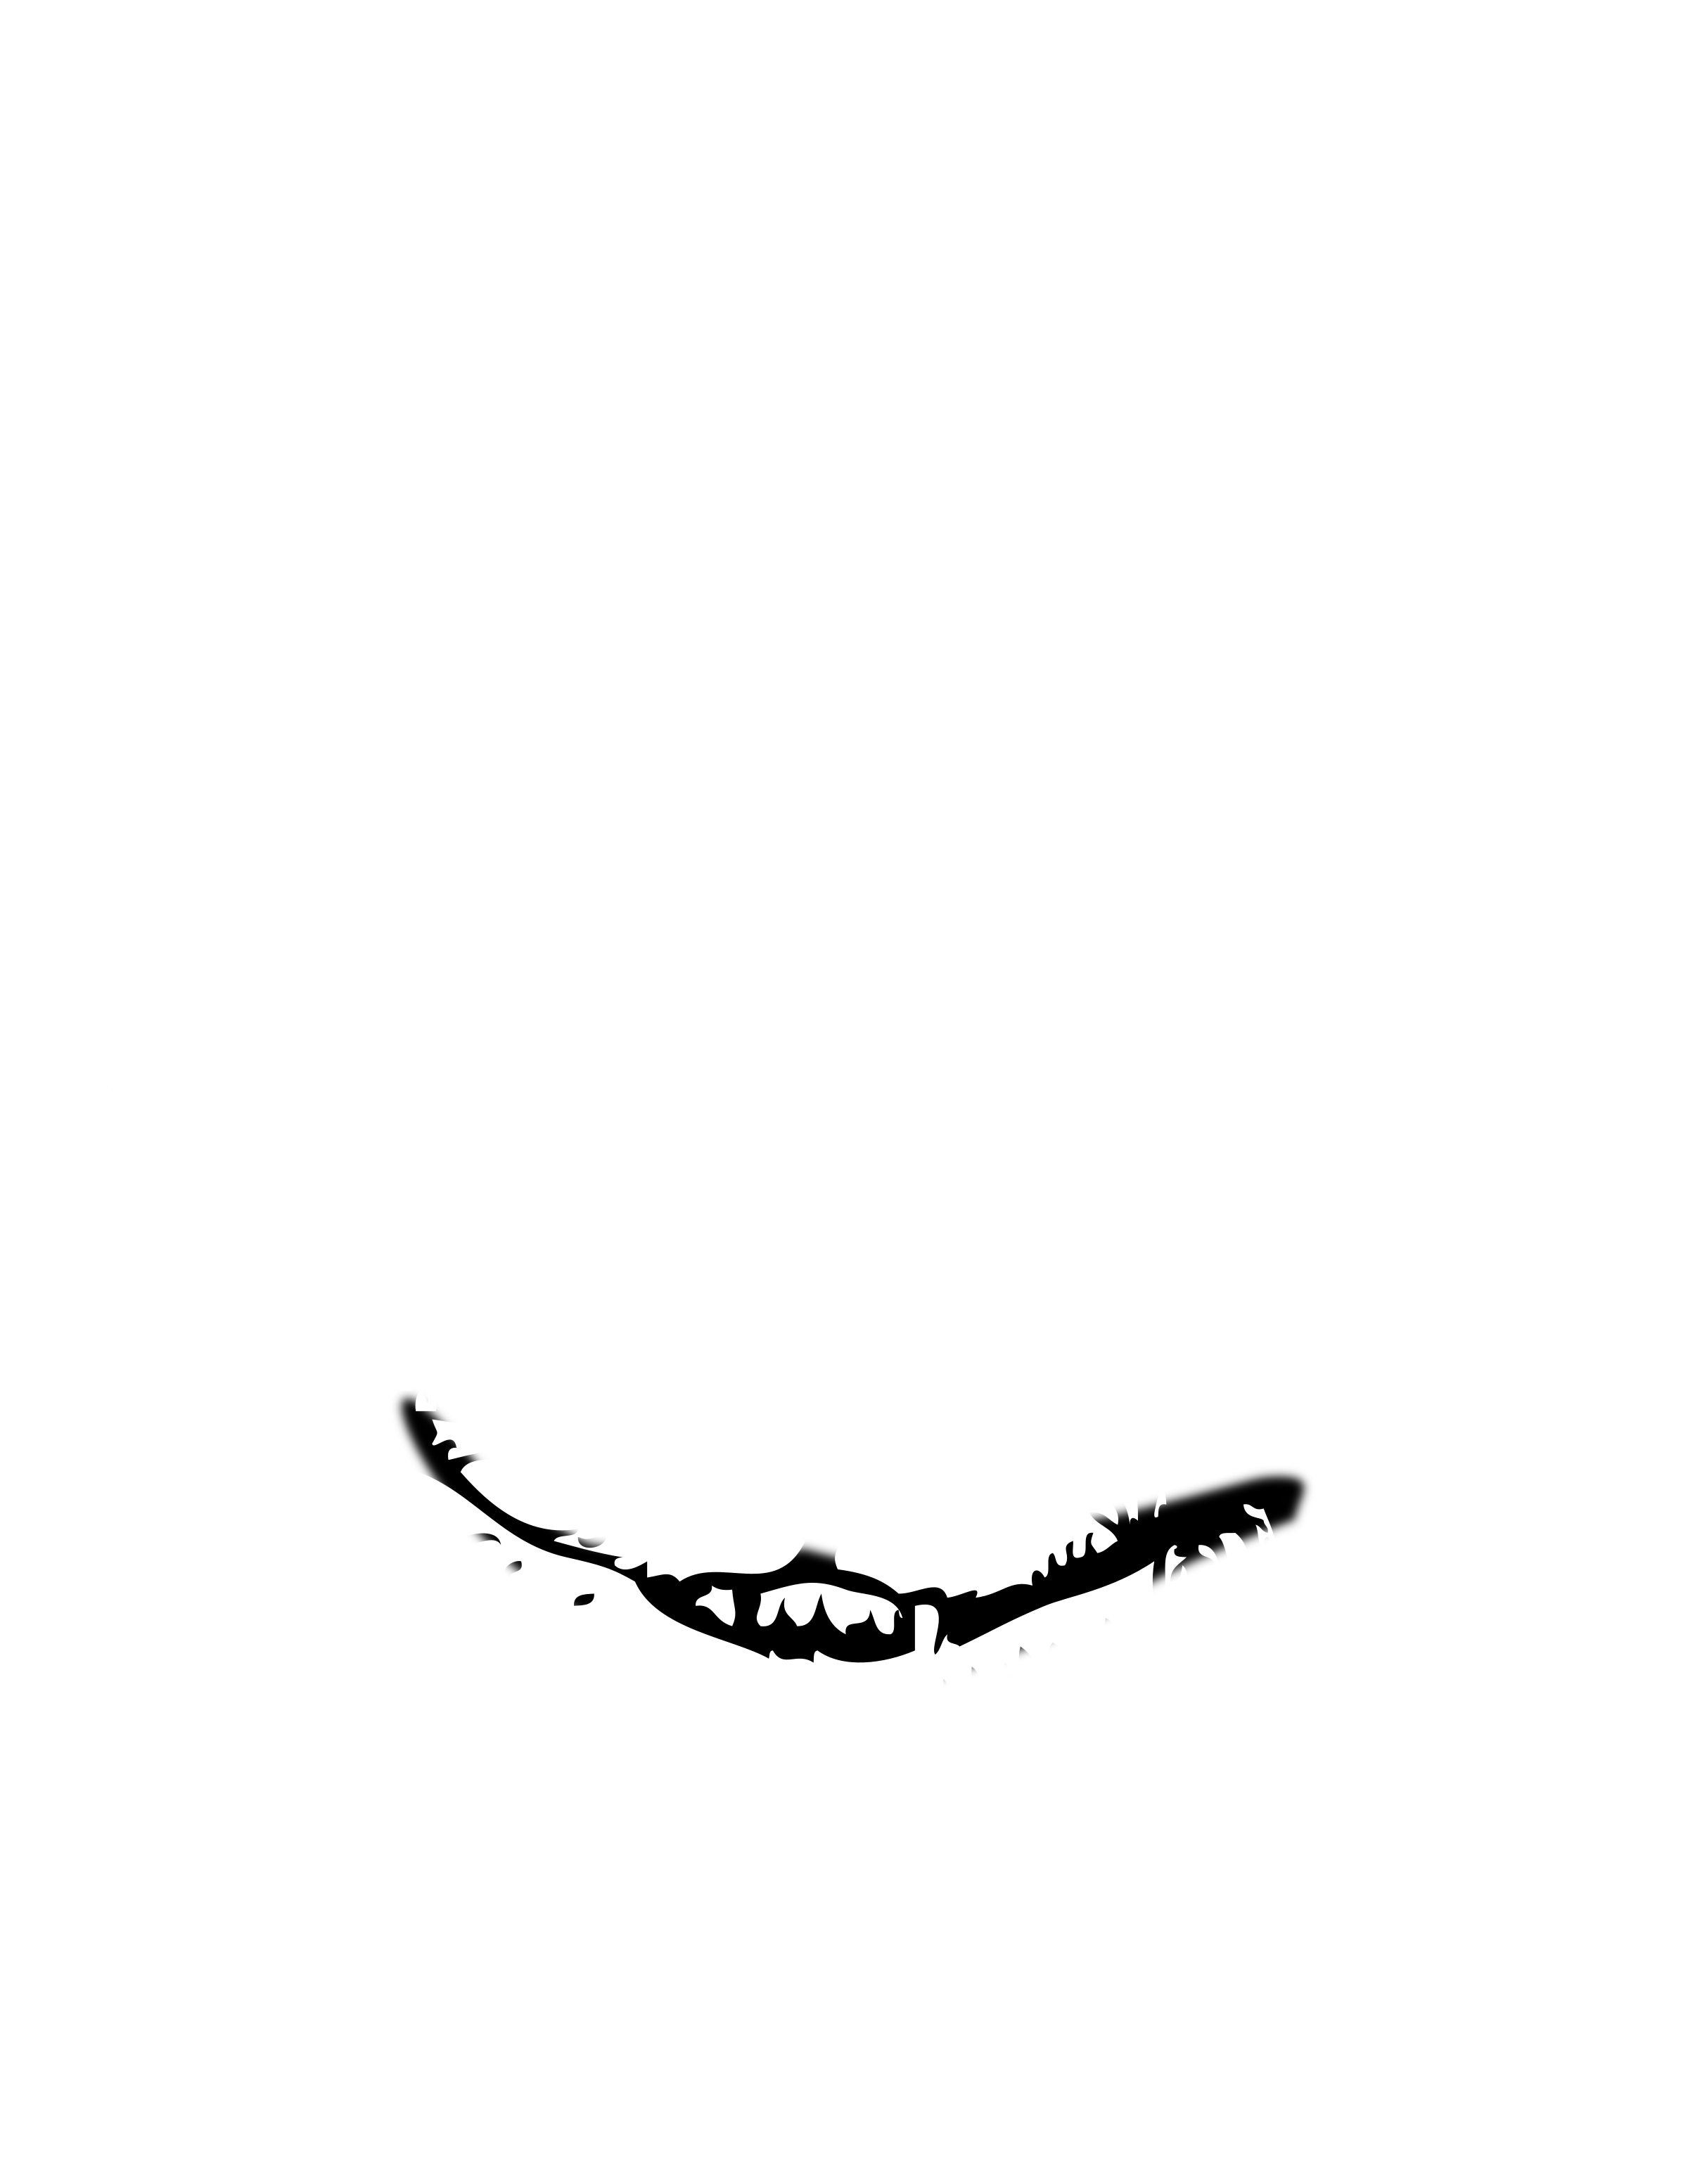 Cheshire cat smile png. Clipart animated big image